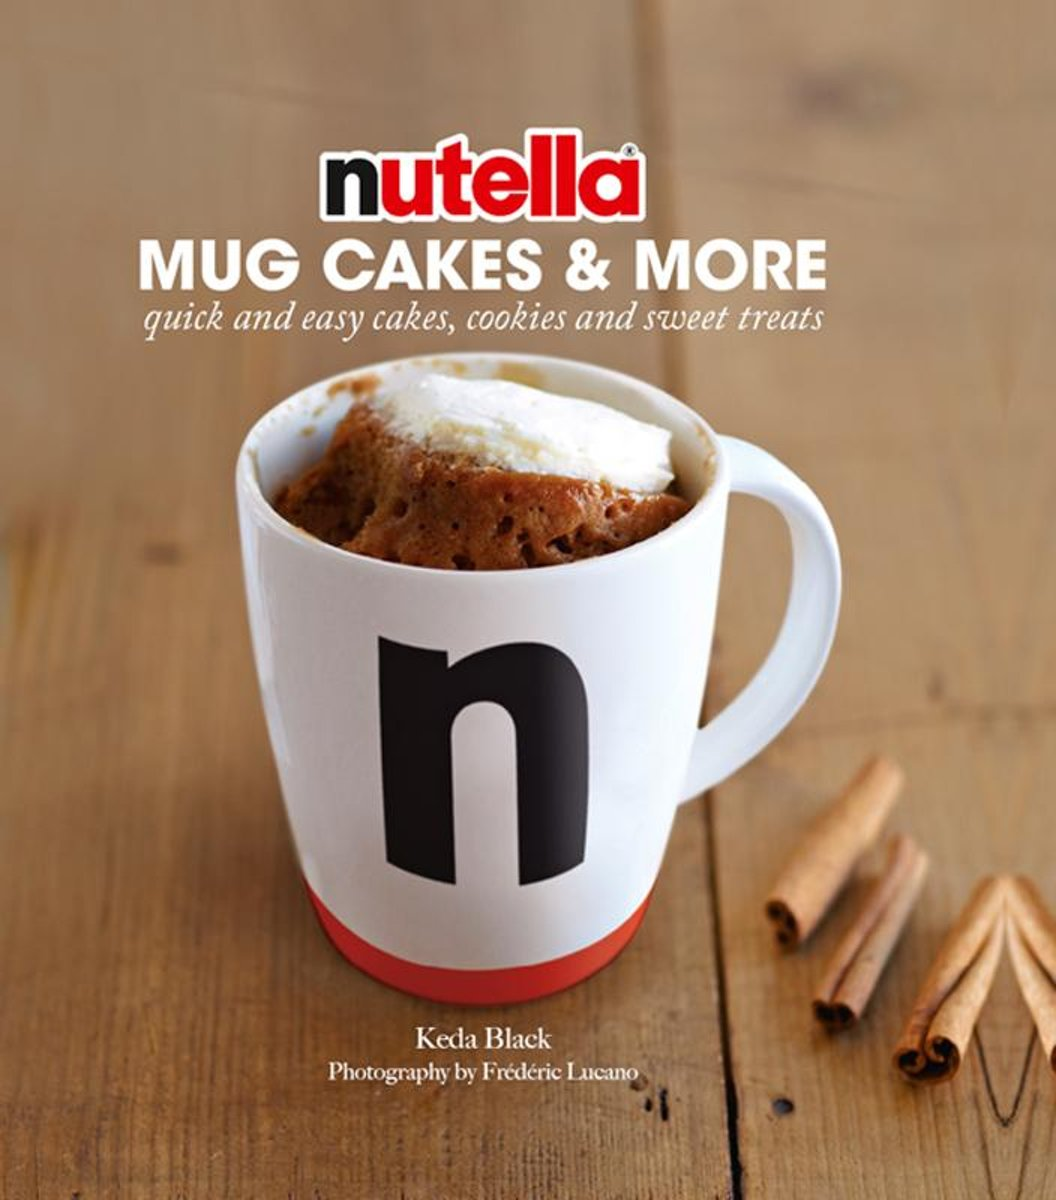 Nutella® Mug Cakes and More